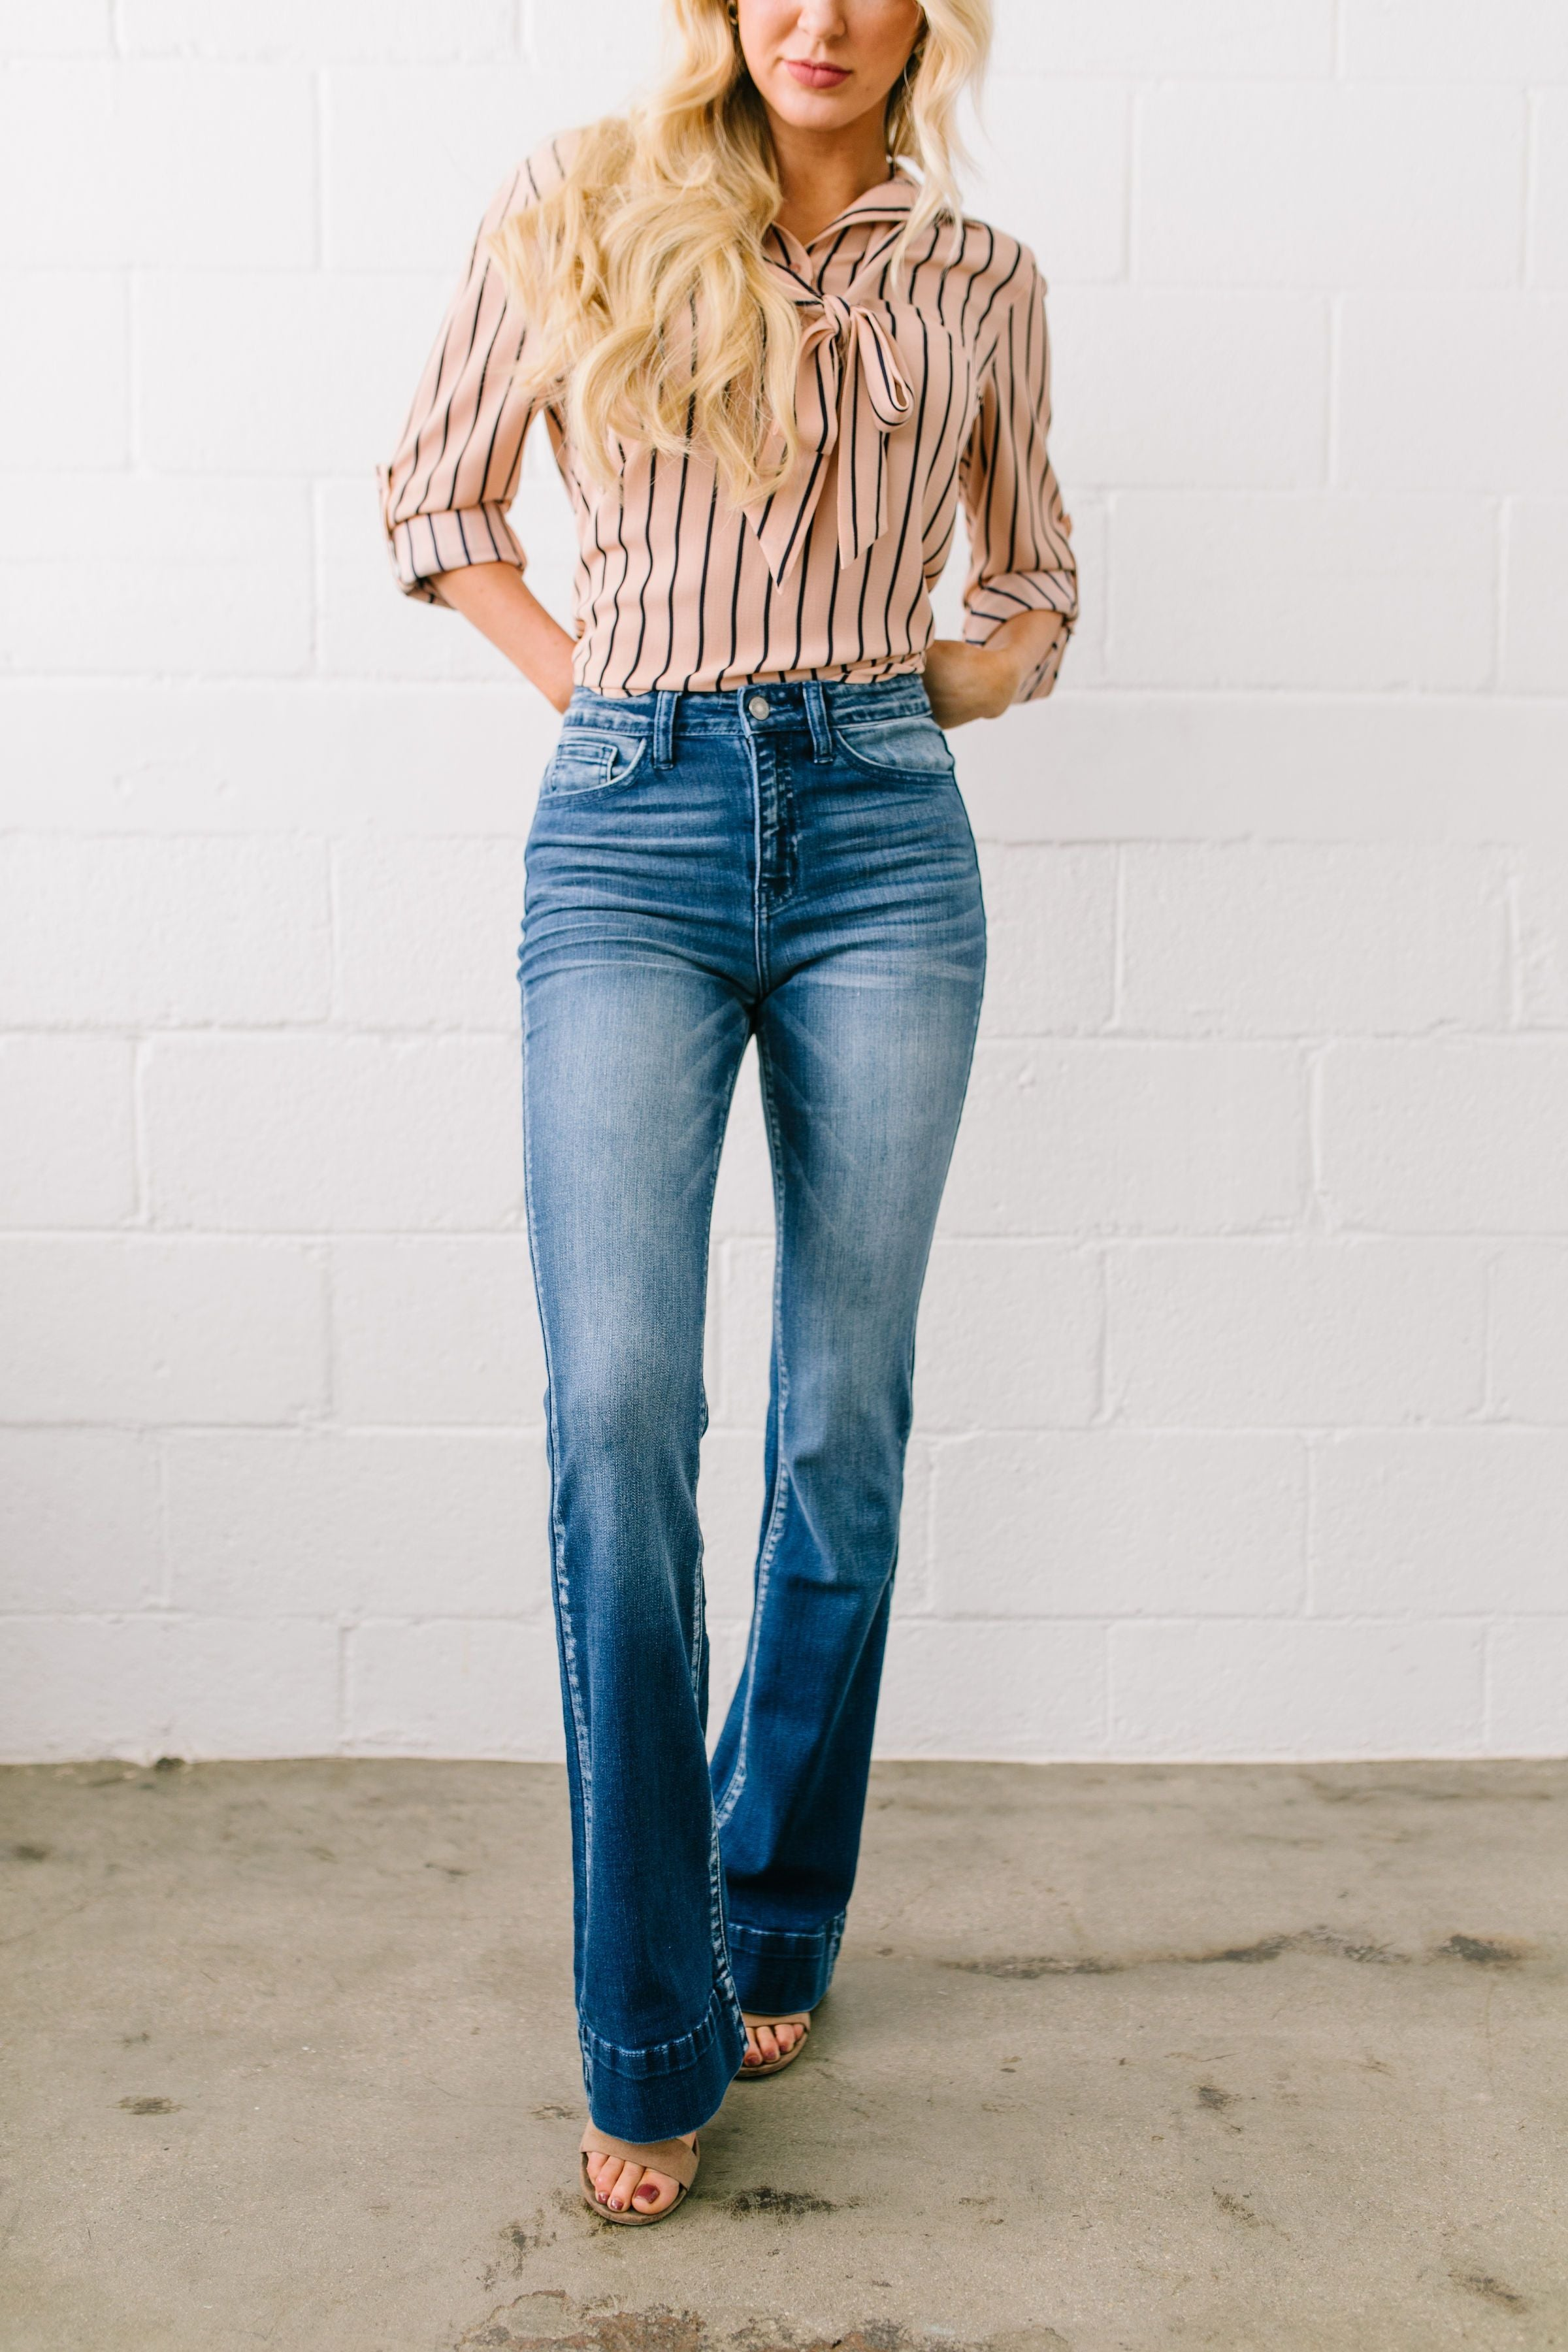 You've Got Flair Flared Jeans - ALL SALES FINAL